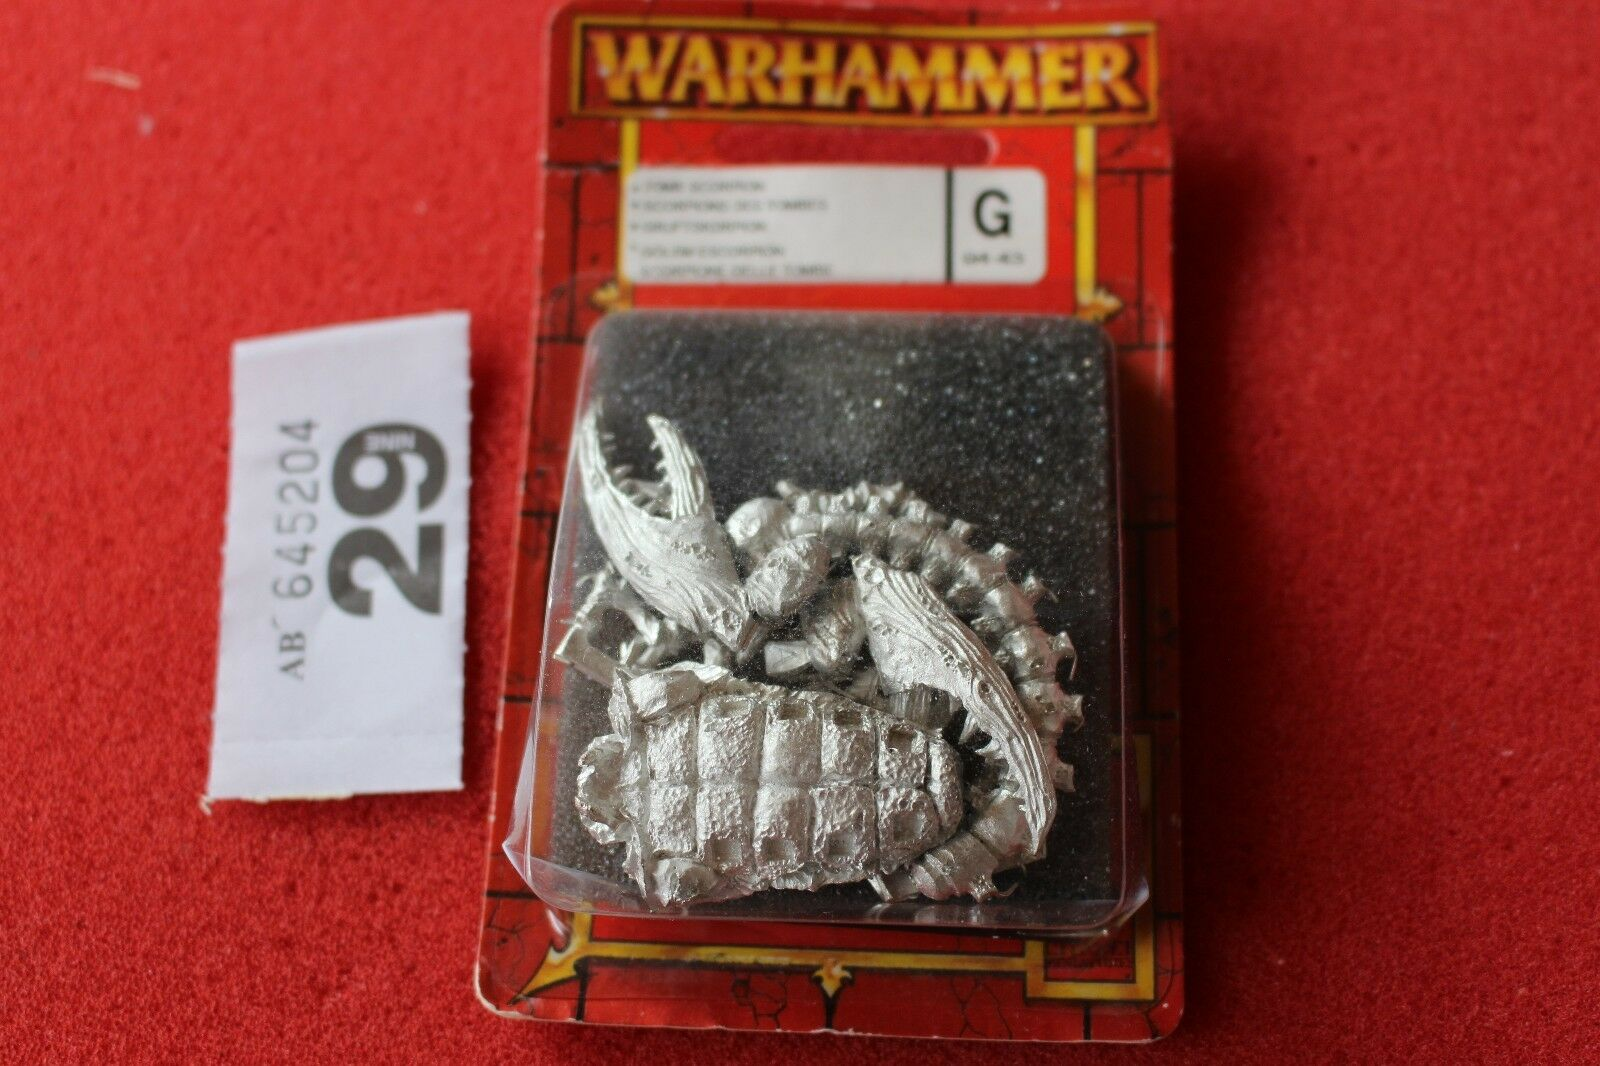 Games Workshop WARHAMMER FANTASY Tomb Kings SCORPION COMPLETA IN METALLO NUOVO CON SCATOLA FUORI CATALOGO